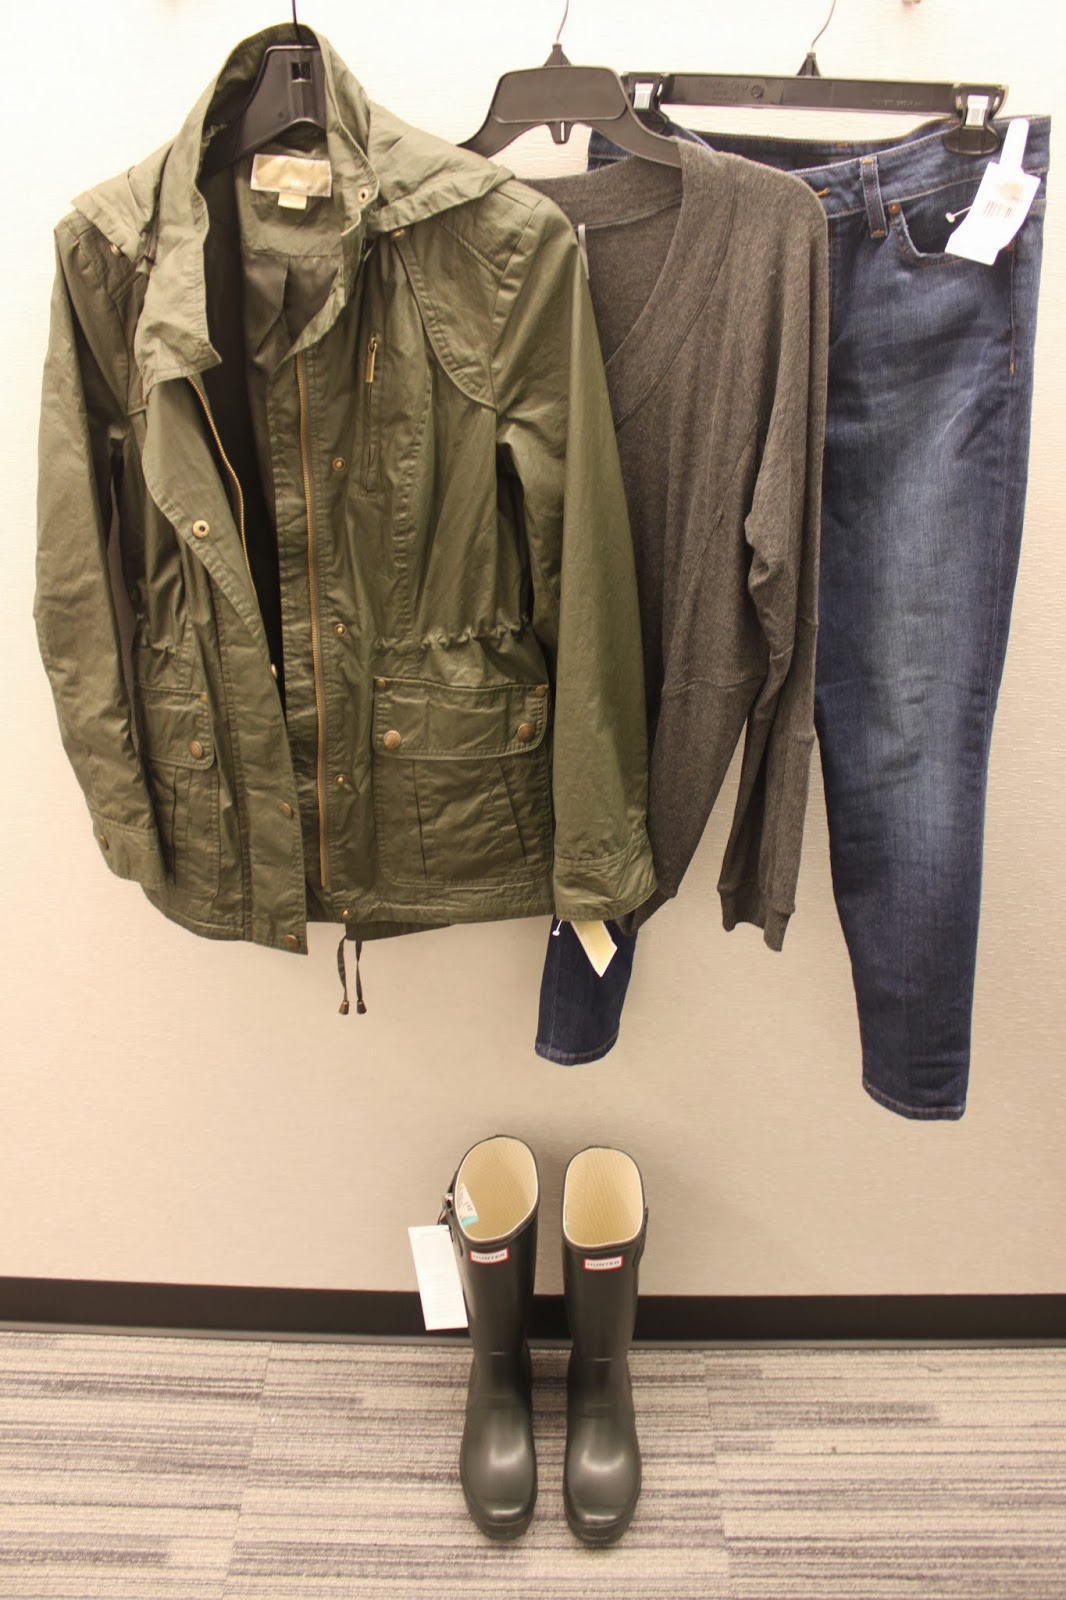 Leather jacket nordstrom rack - It Rains A Lot Here In Oregon So A Good Pair Of Rain Boots Is A Must I Already Own A Pink Pair Of Hunter Rain Boots But I Ve Been Dying To